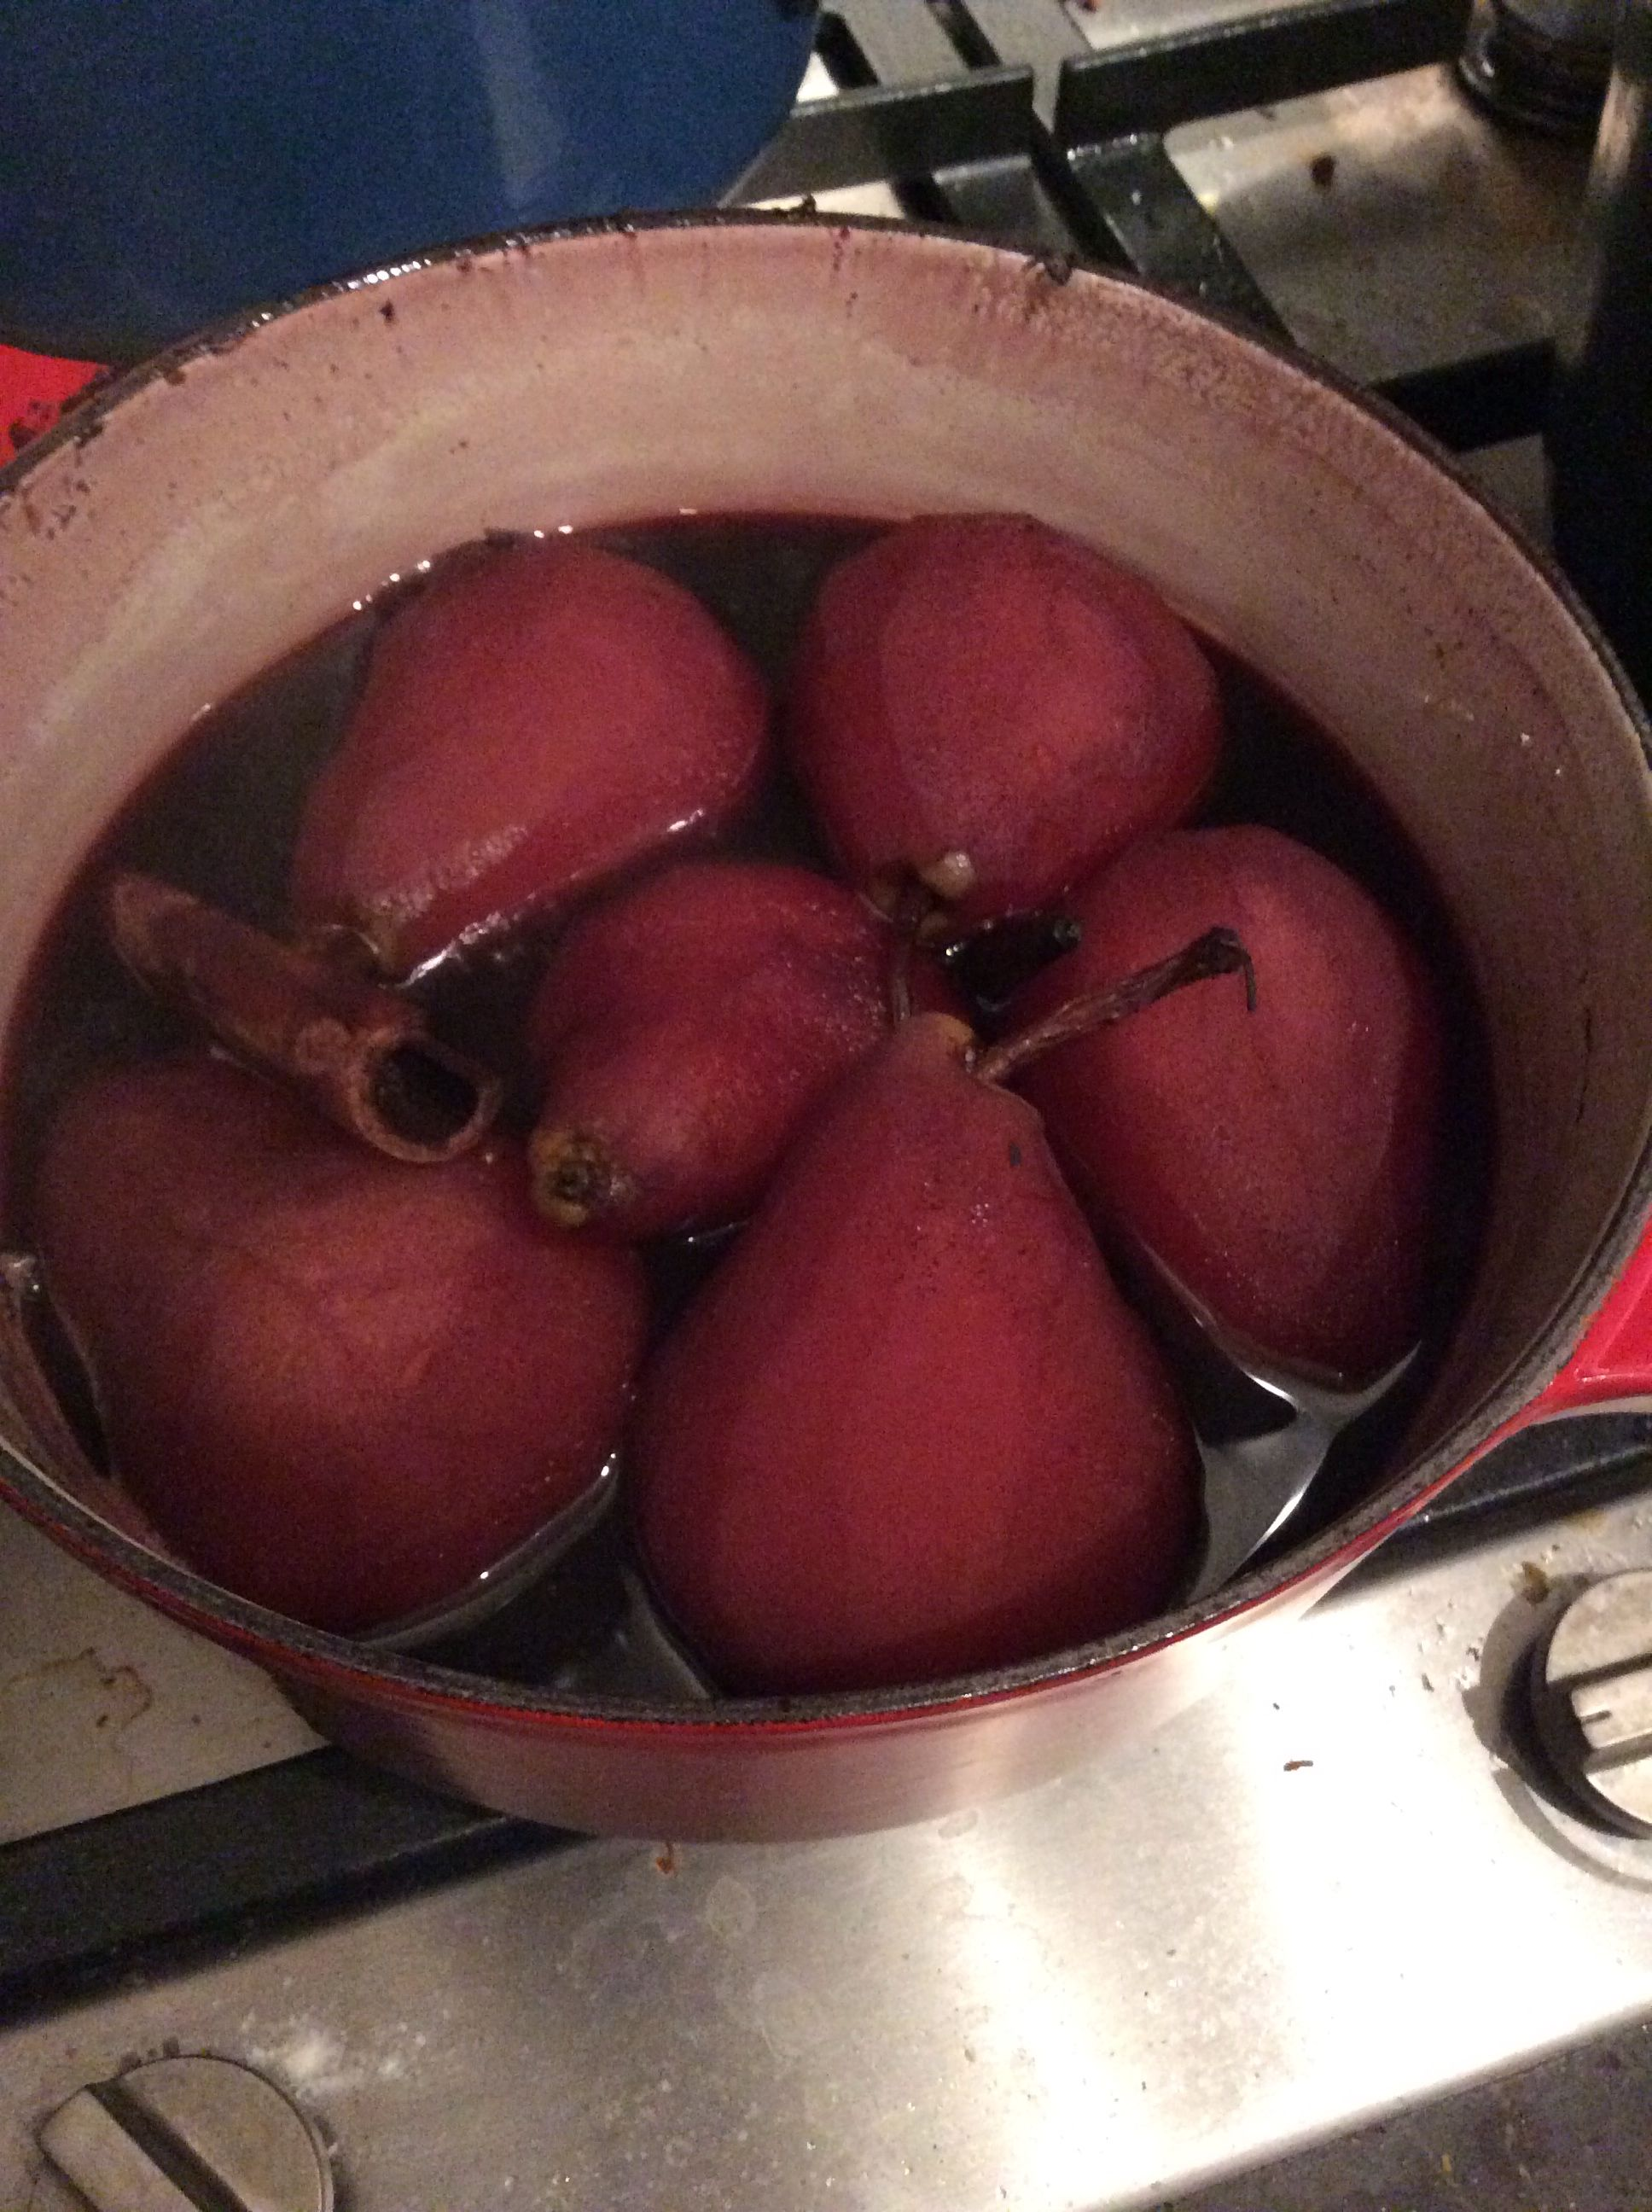 Poached Pears In Red Wine Orange Vanilla And Orange Pears In Red Wine Poached Pears Food